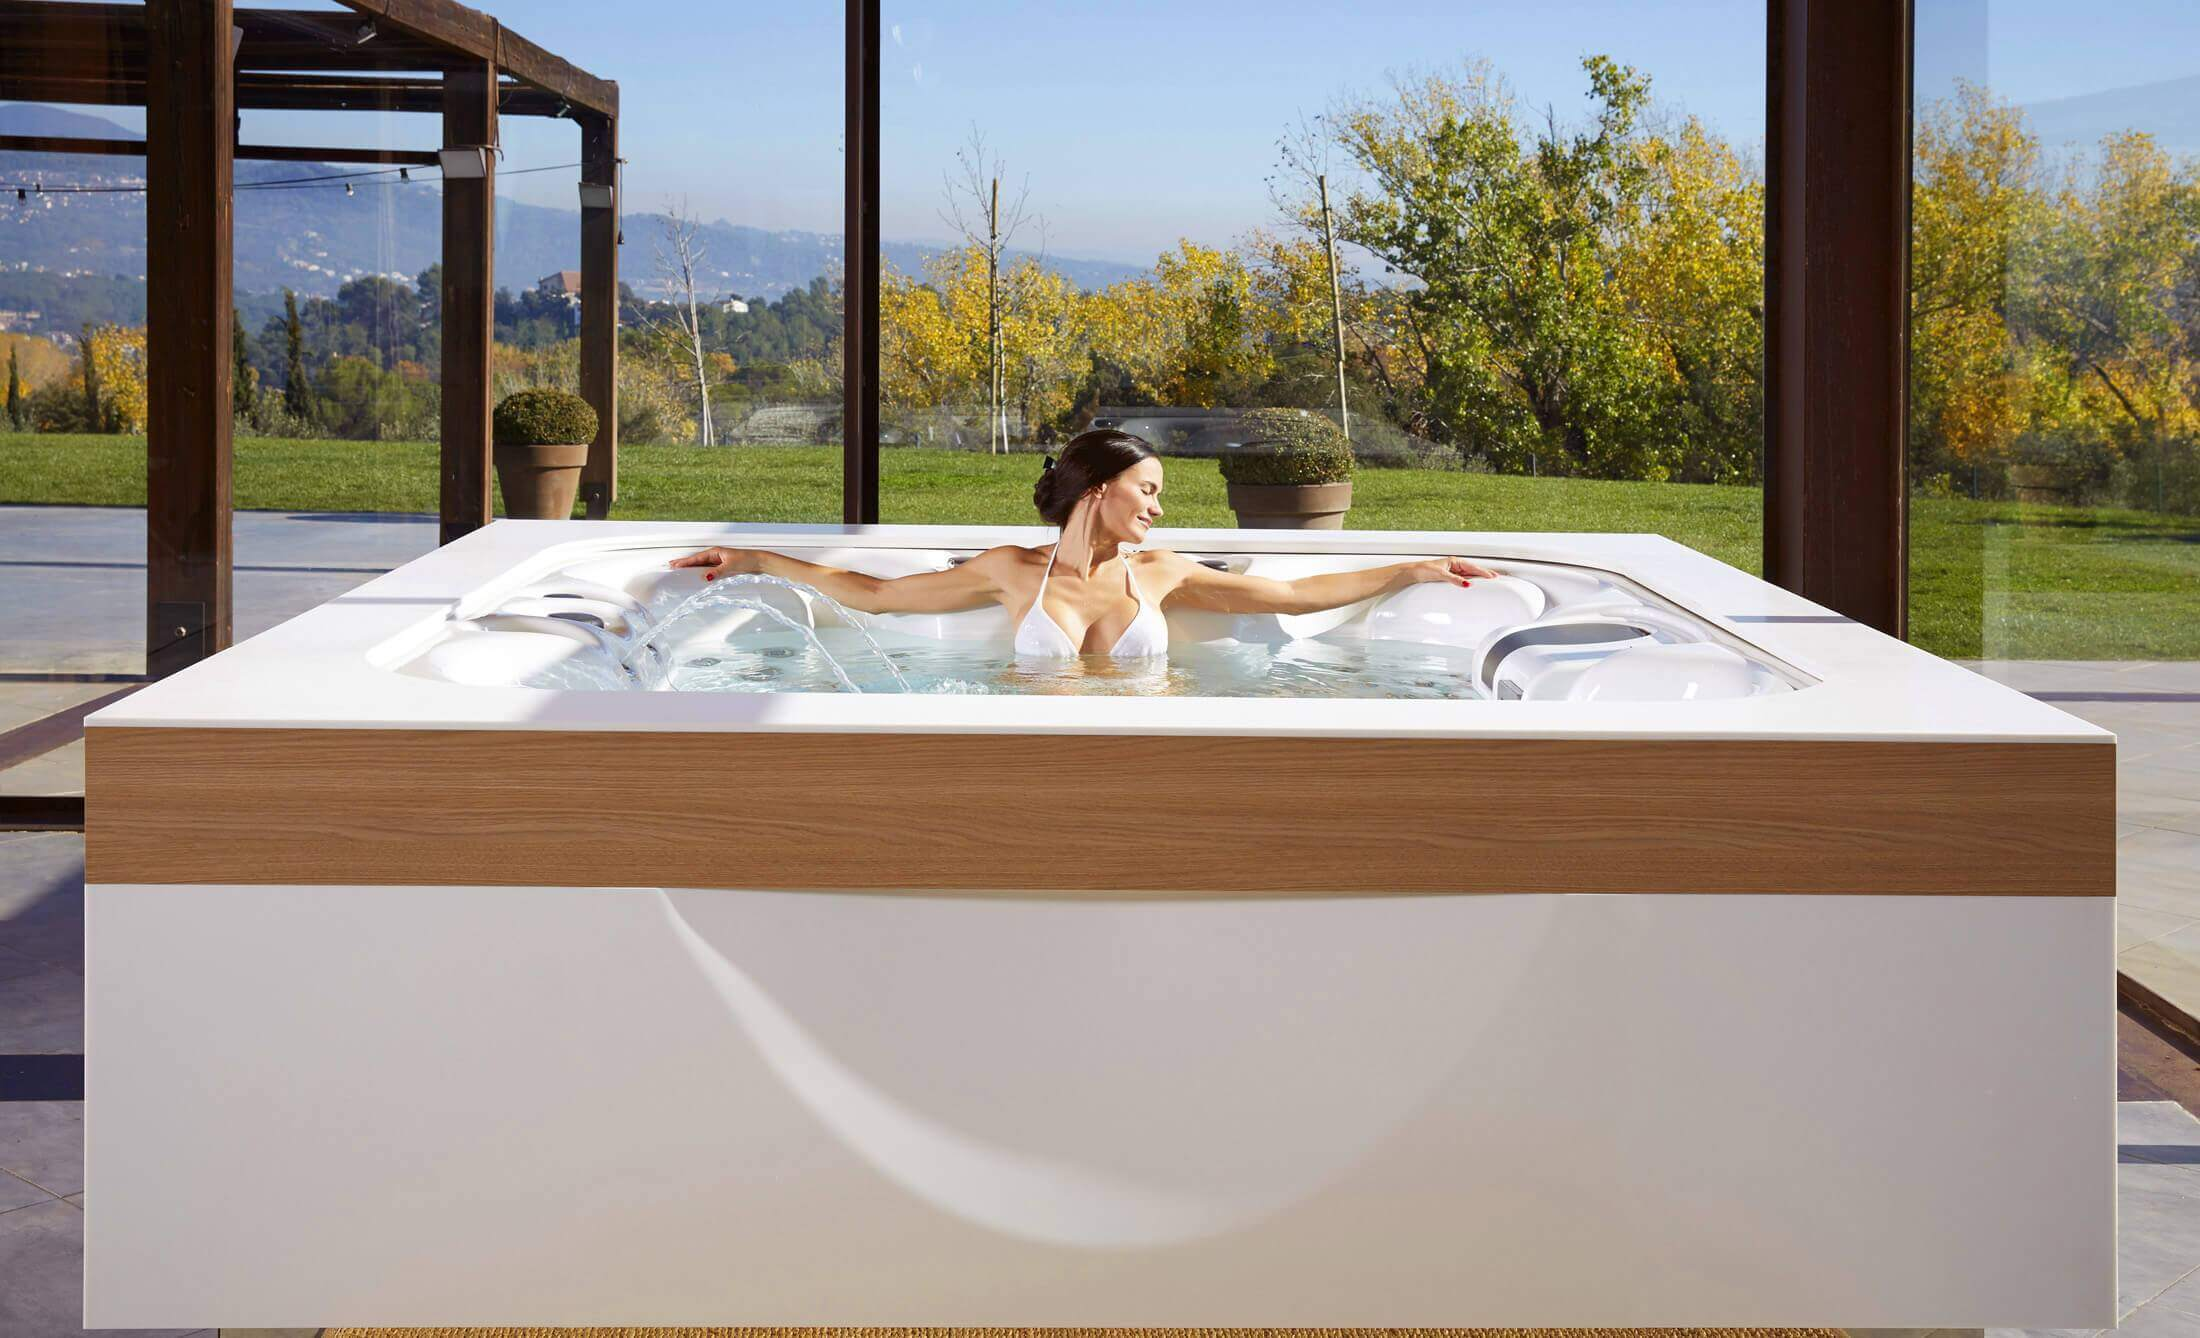 Whirlpool Outdoor Swim Spa Buy Hot Tubs And Hydromassage Tubs Hot Tub Manufacturer